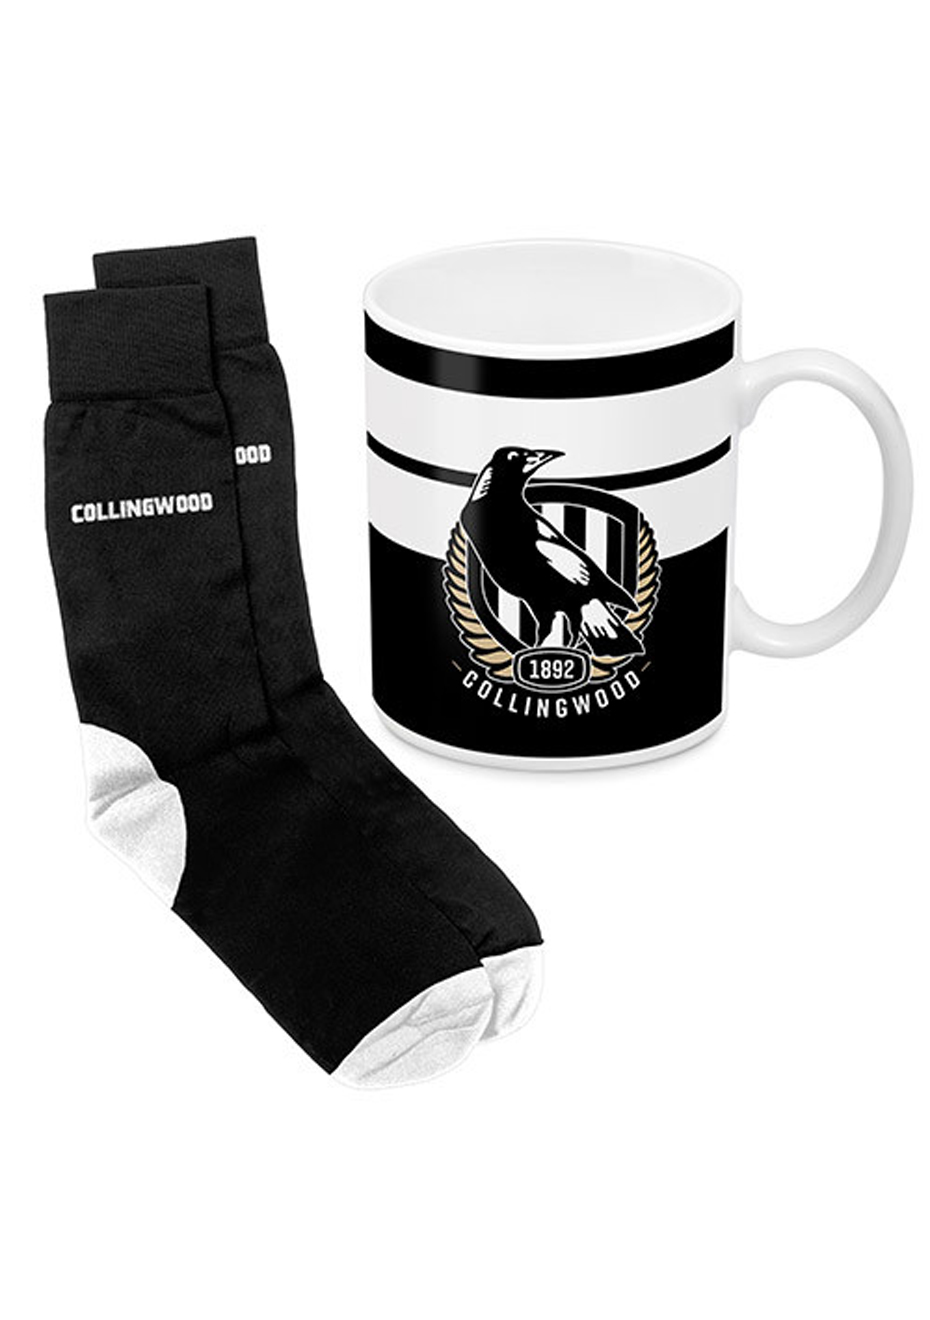 Mug Collingwood And Coffee Gift Pack Magpies Afl Sock FJclTK1